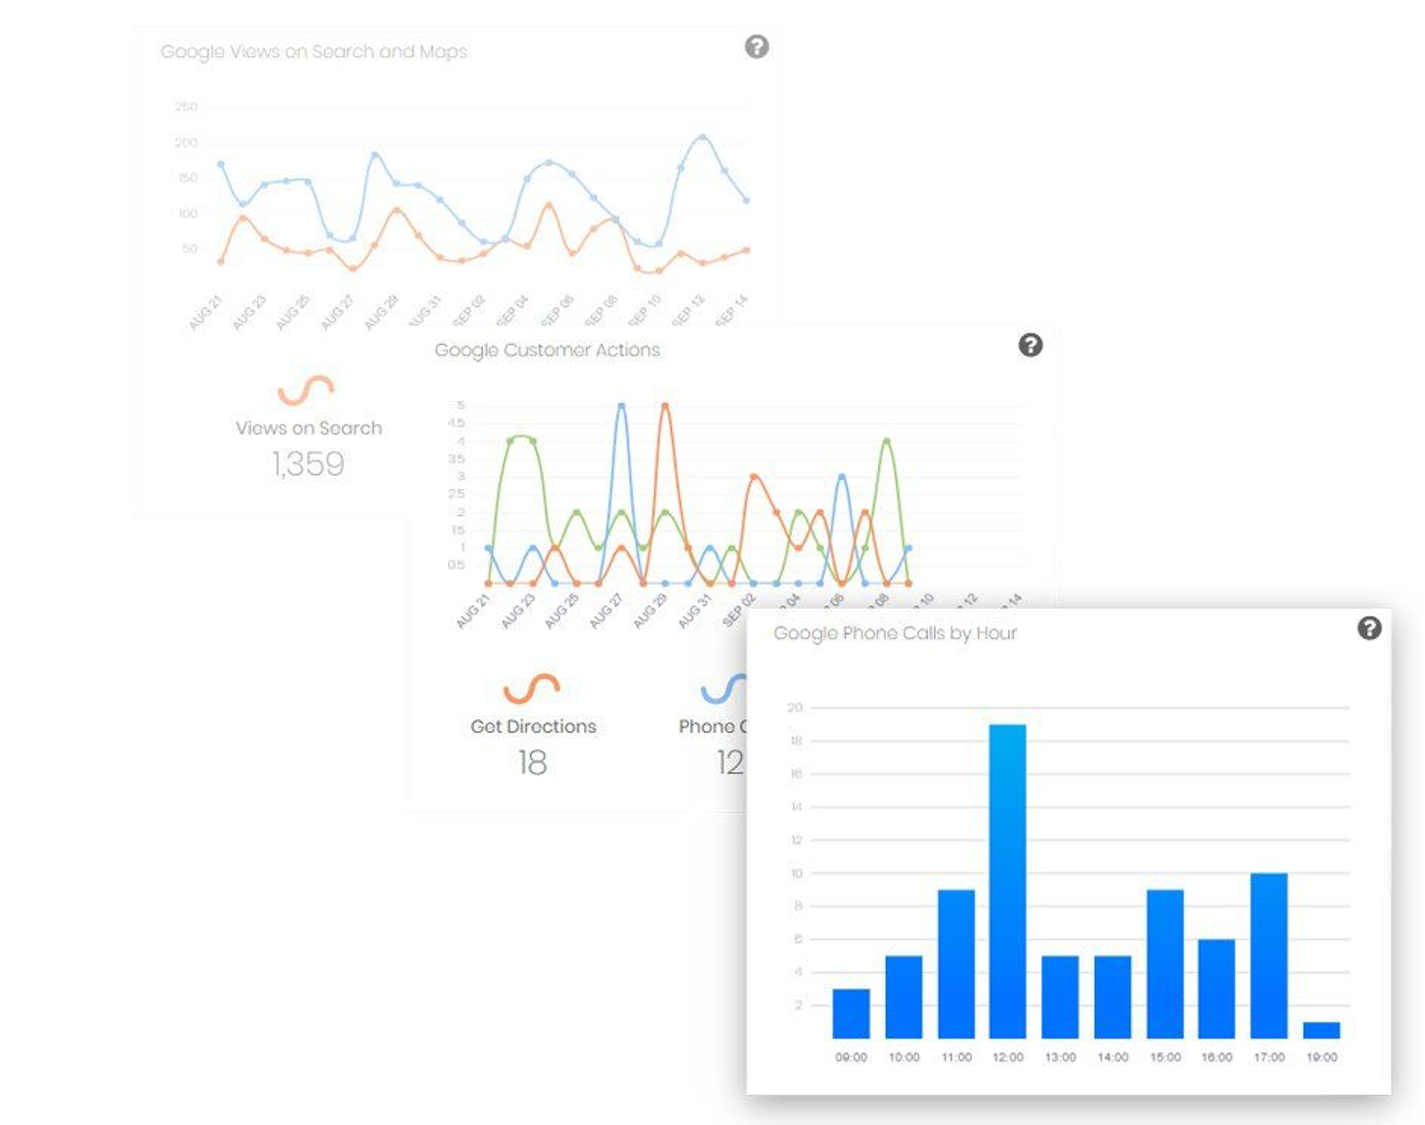 Screenshot of Google search results in a graph format